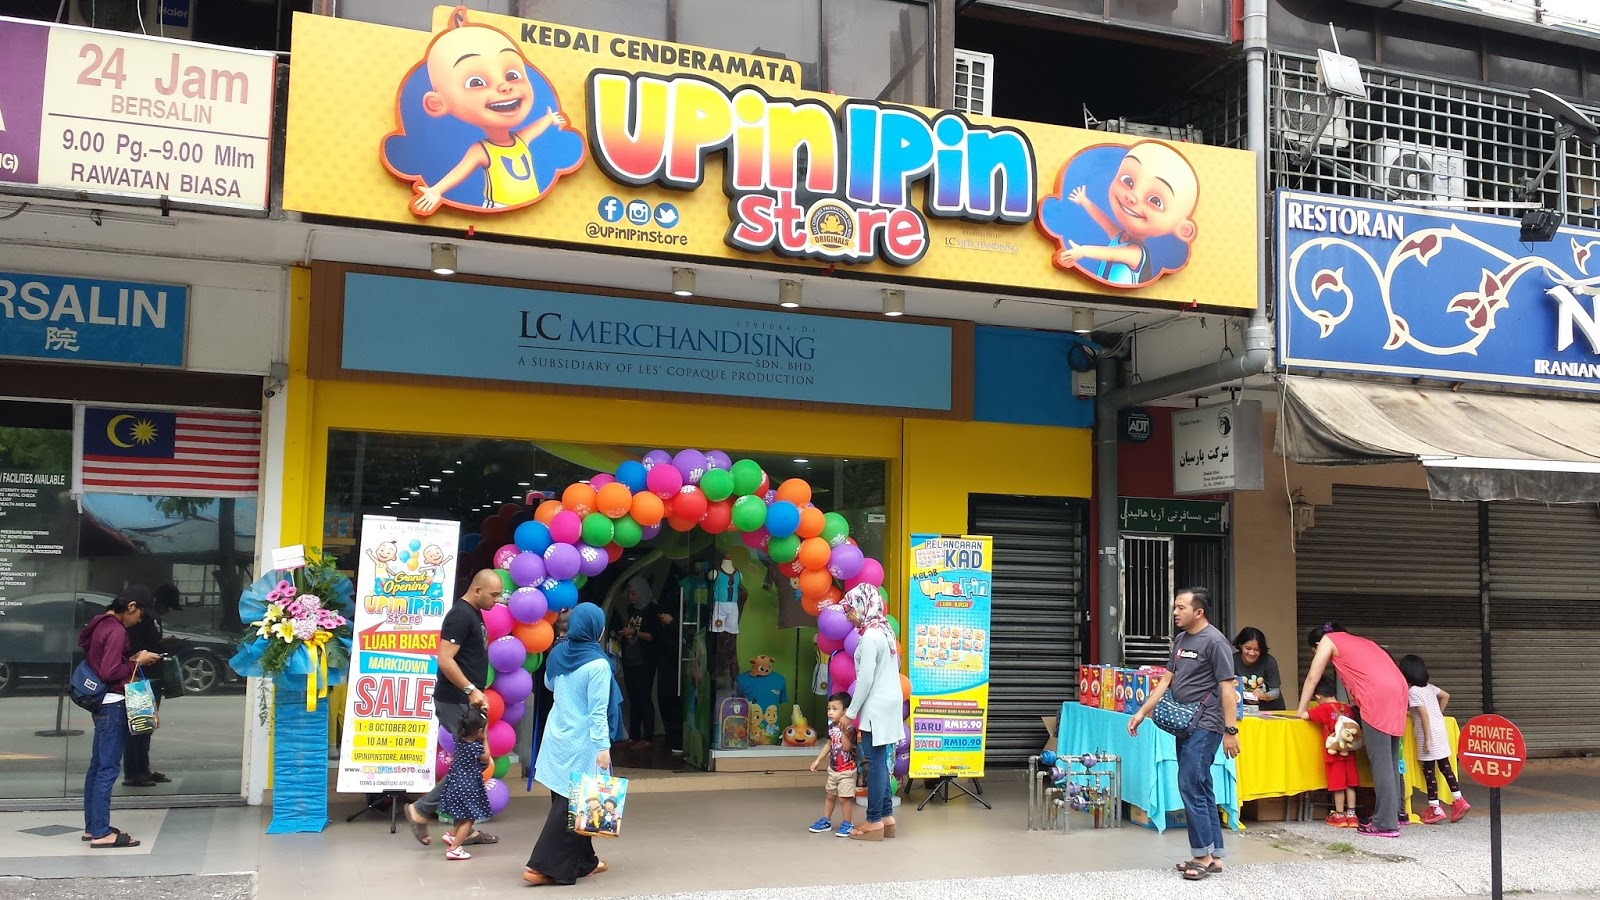 New opening of upin ipin store ampang weekend treat we are invited to the grand opening upin ipin store ampanglocated same row with rhb bank it was a great event with fun activities line up for kids and stopboris Choice Image